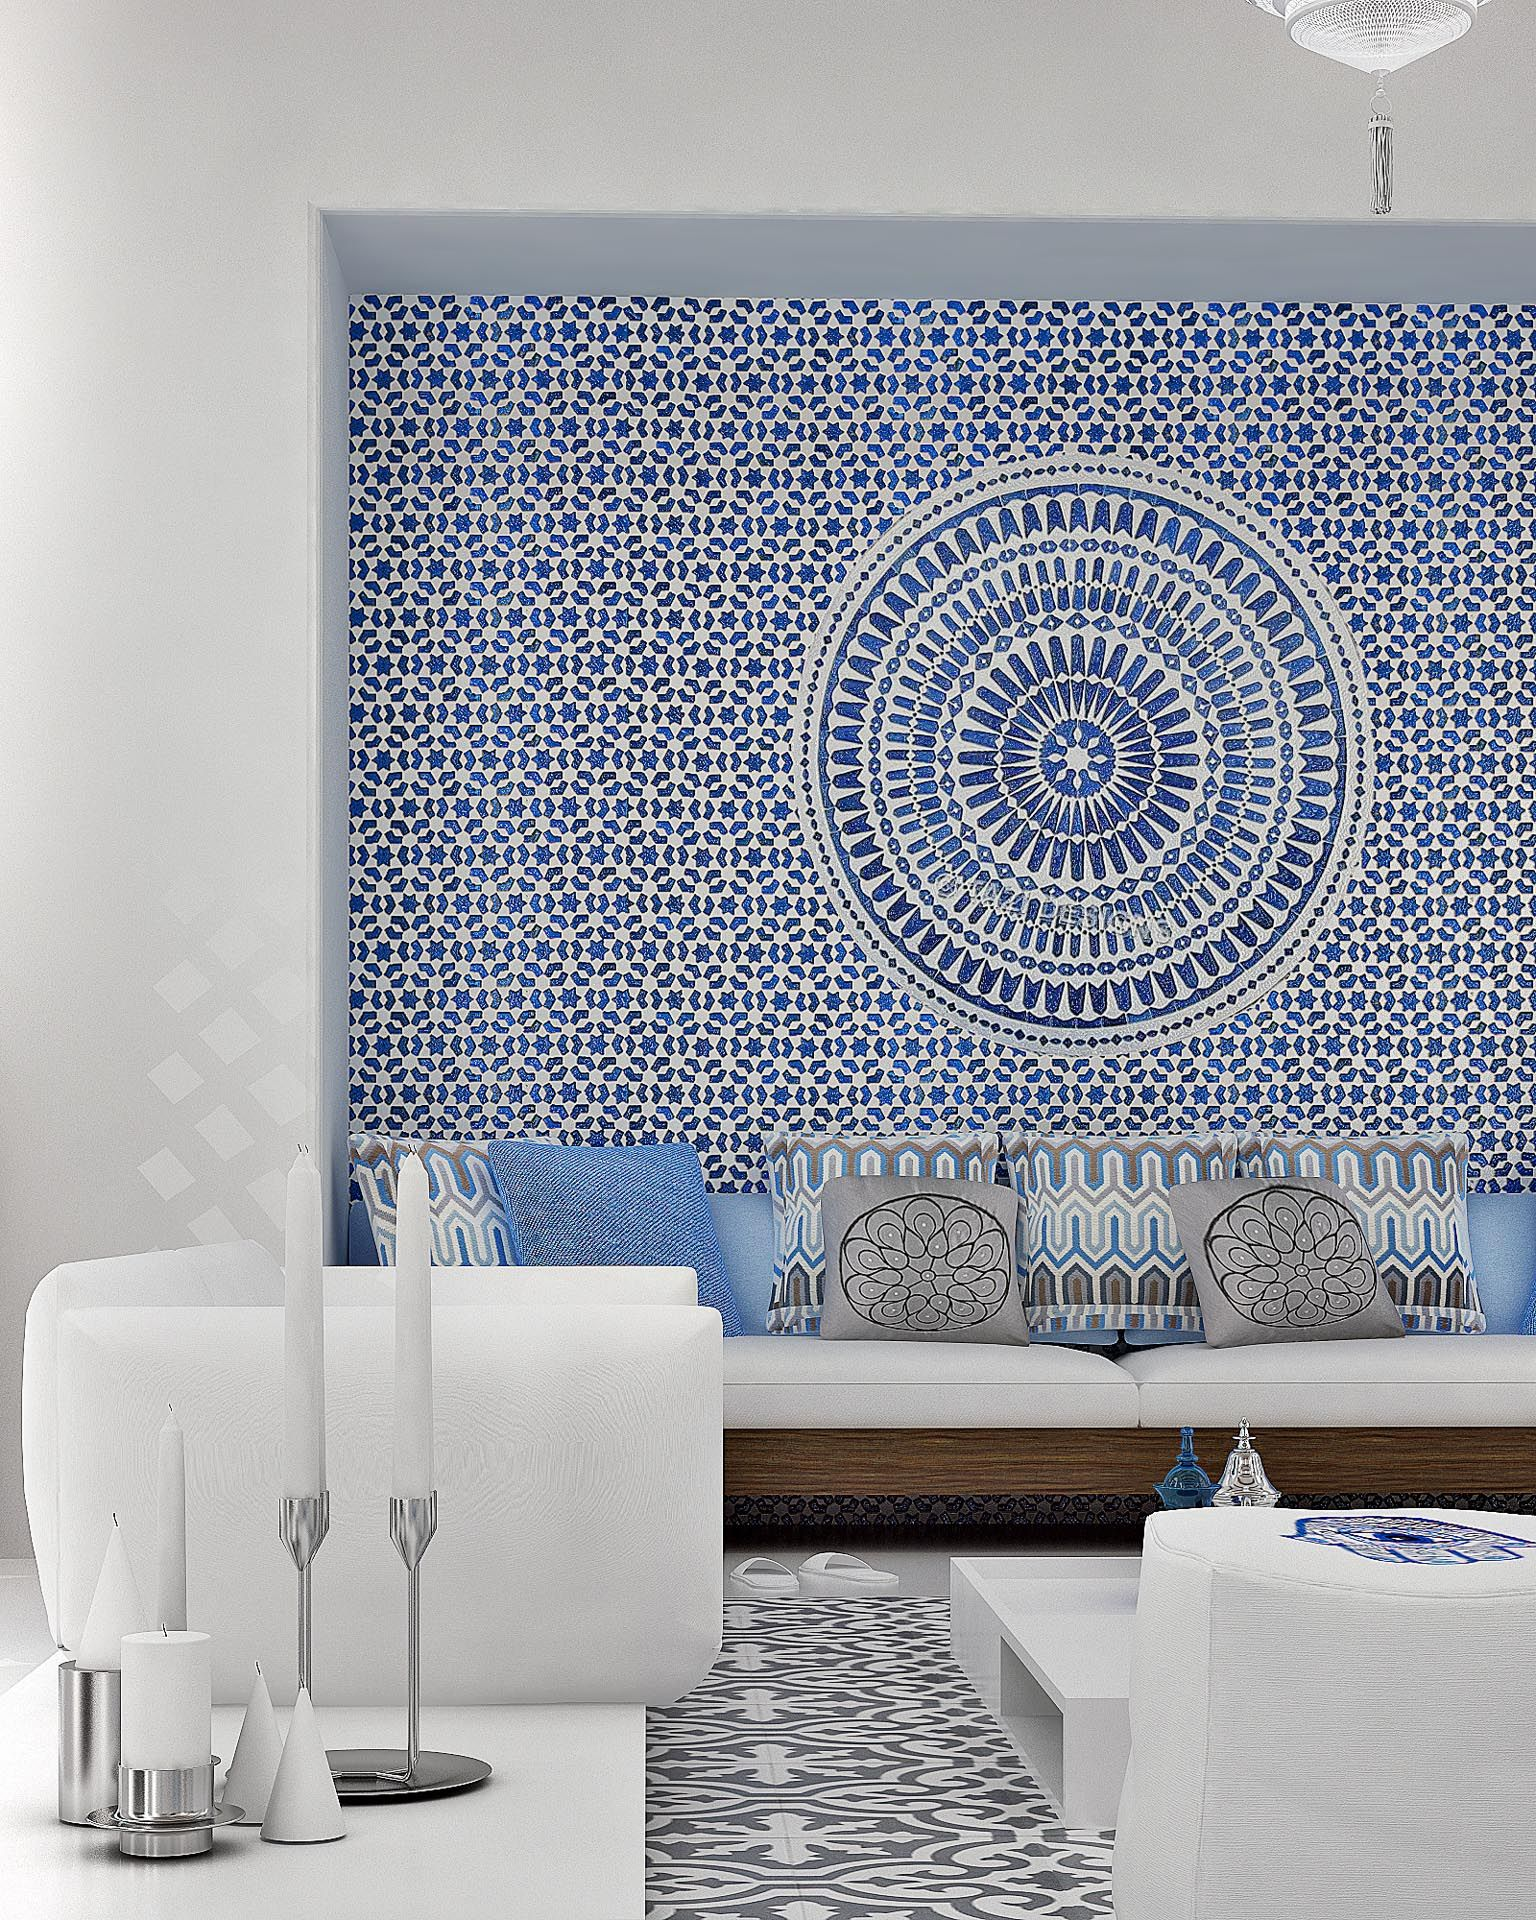 Greek Living Room With Built In Bench Seating Love The Blue Wall Mural Mimar